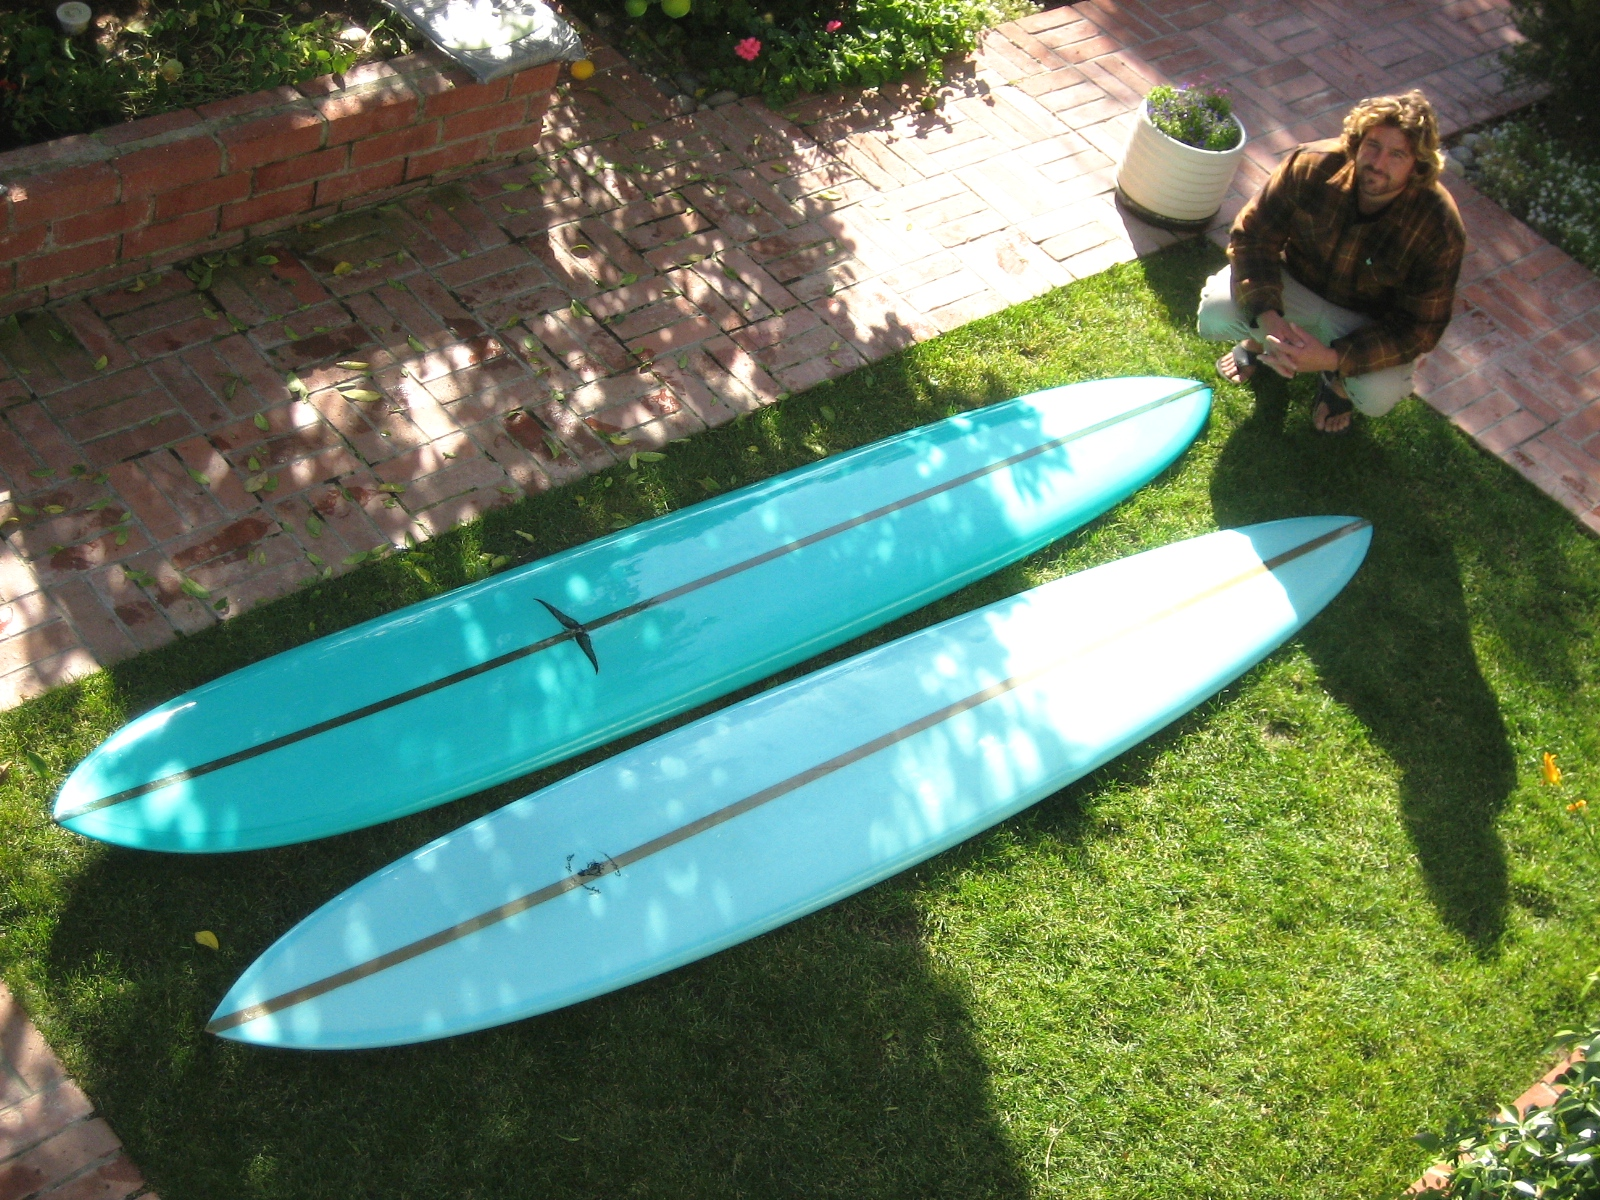 CHERRY SURFBOARDS BLOG: Great Gliders!